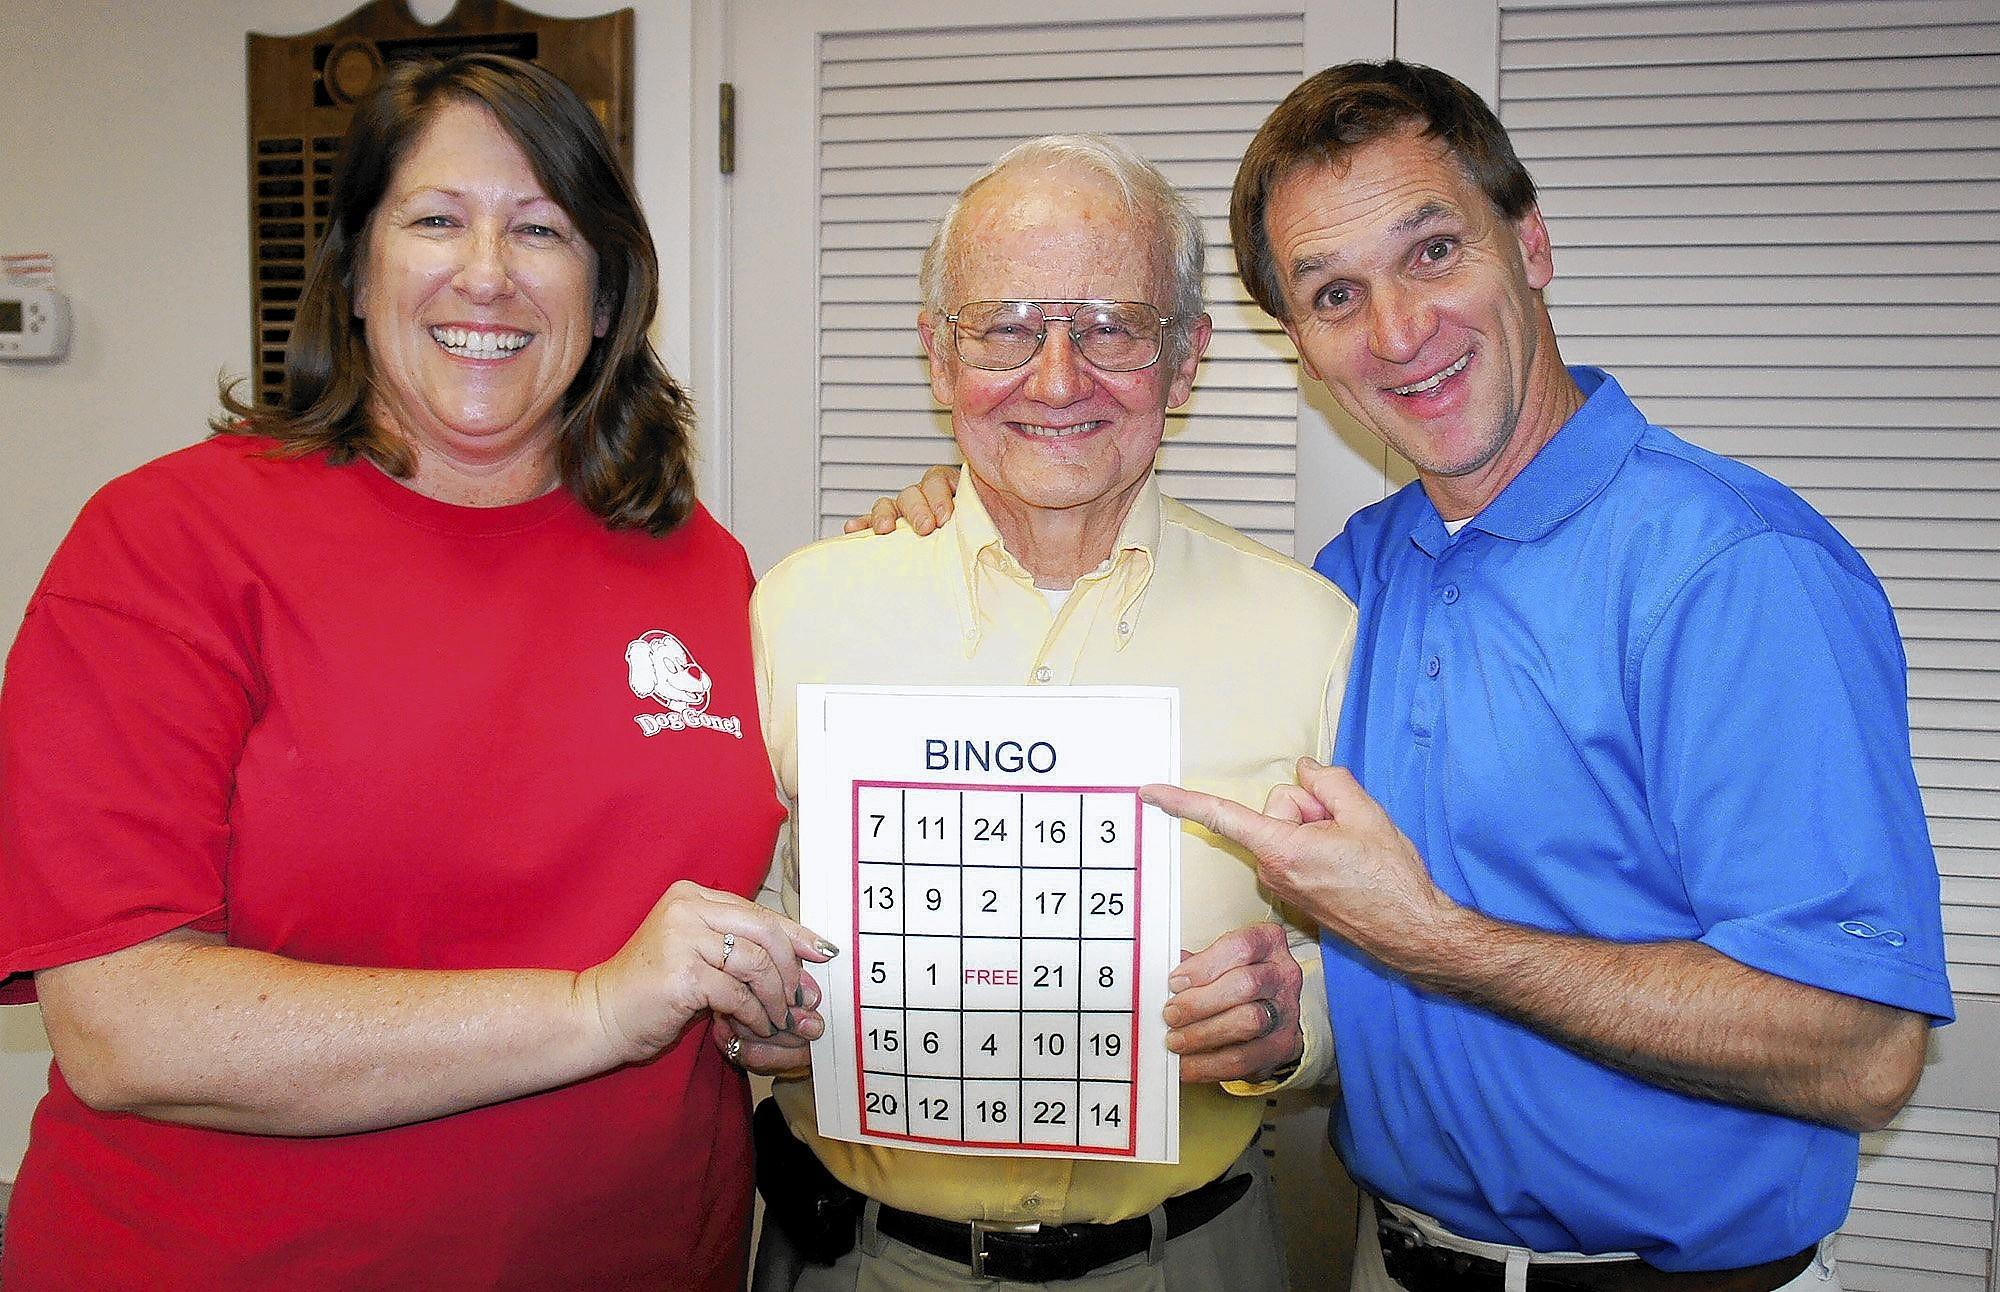 Dana Hardin, from left, Bill Pounders and Tyler Wright invite community members to the Saturday, April 26 Bingo BBQ in support of the La Cañada Flintridge Tournament of Roses Assn. The event will be held at the Thursday Club. For tickets visit lcftra.org.